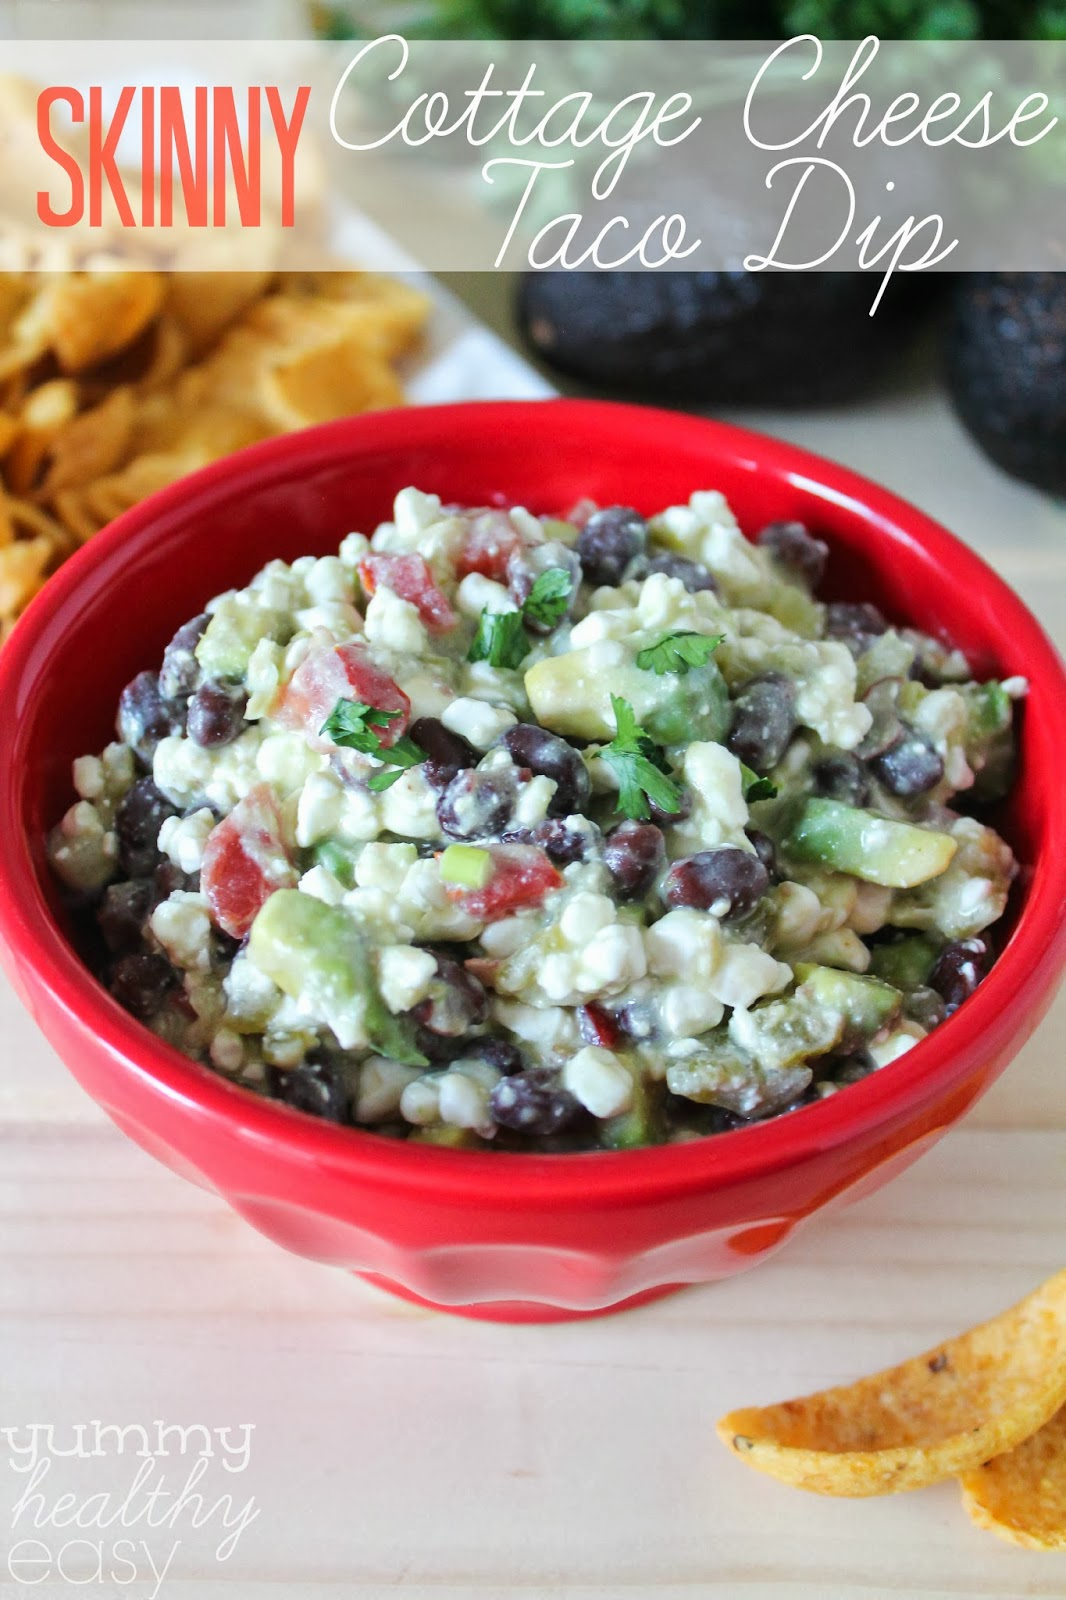 Skinny Cottage Cheese Taco Dip - Yummy Healthy Easy